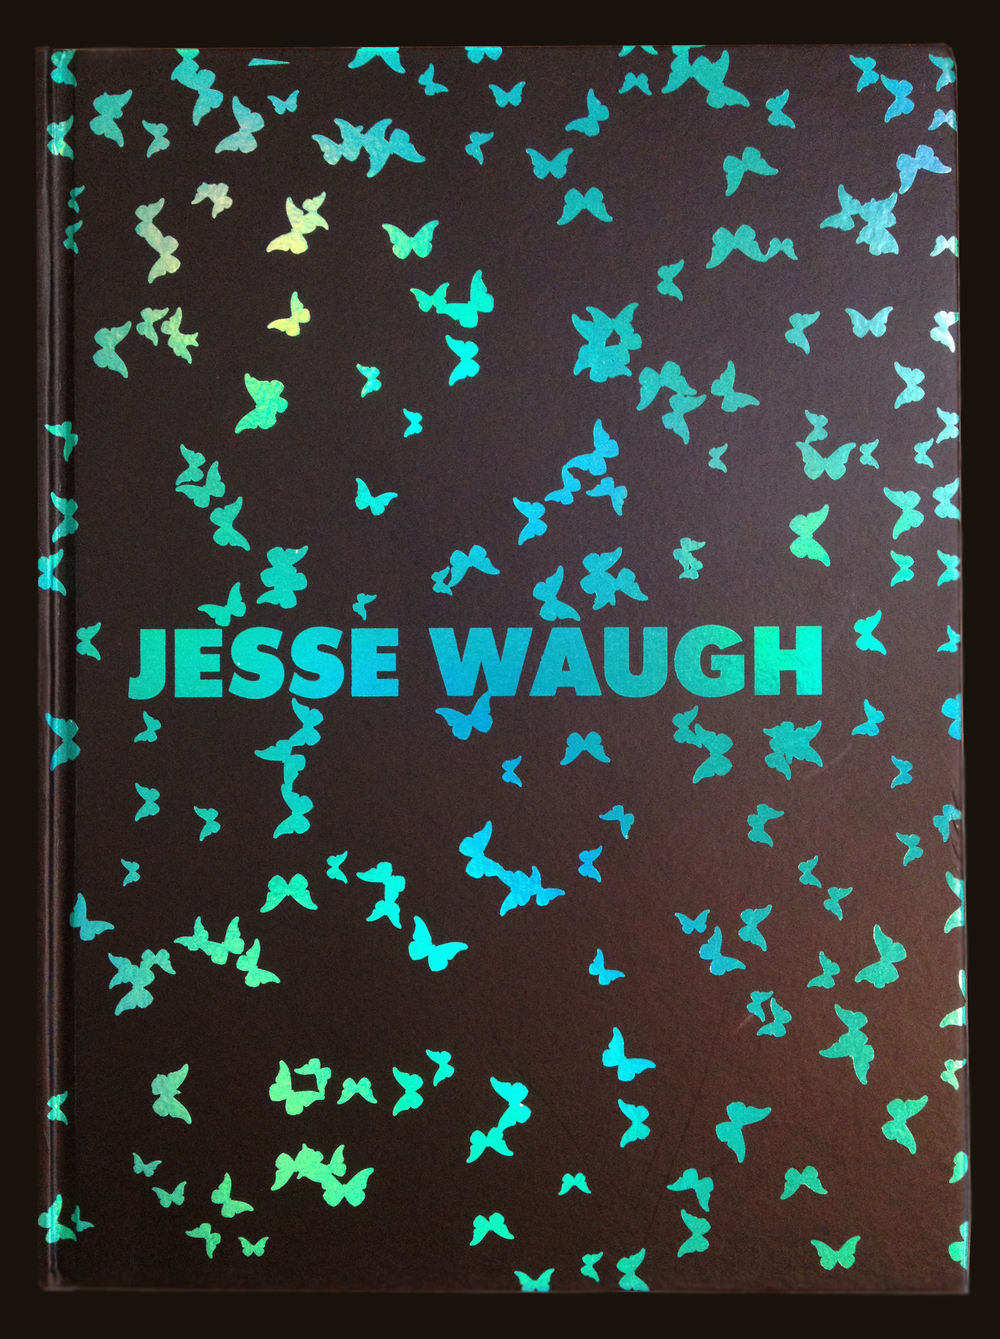 Jesse Waugh   Portrait of an artist and his strivings for pulchrism   2012 Artist monograph